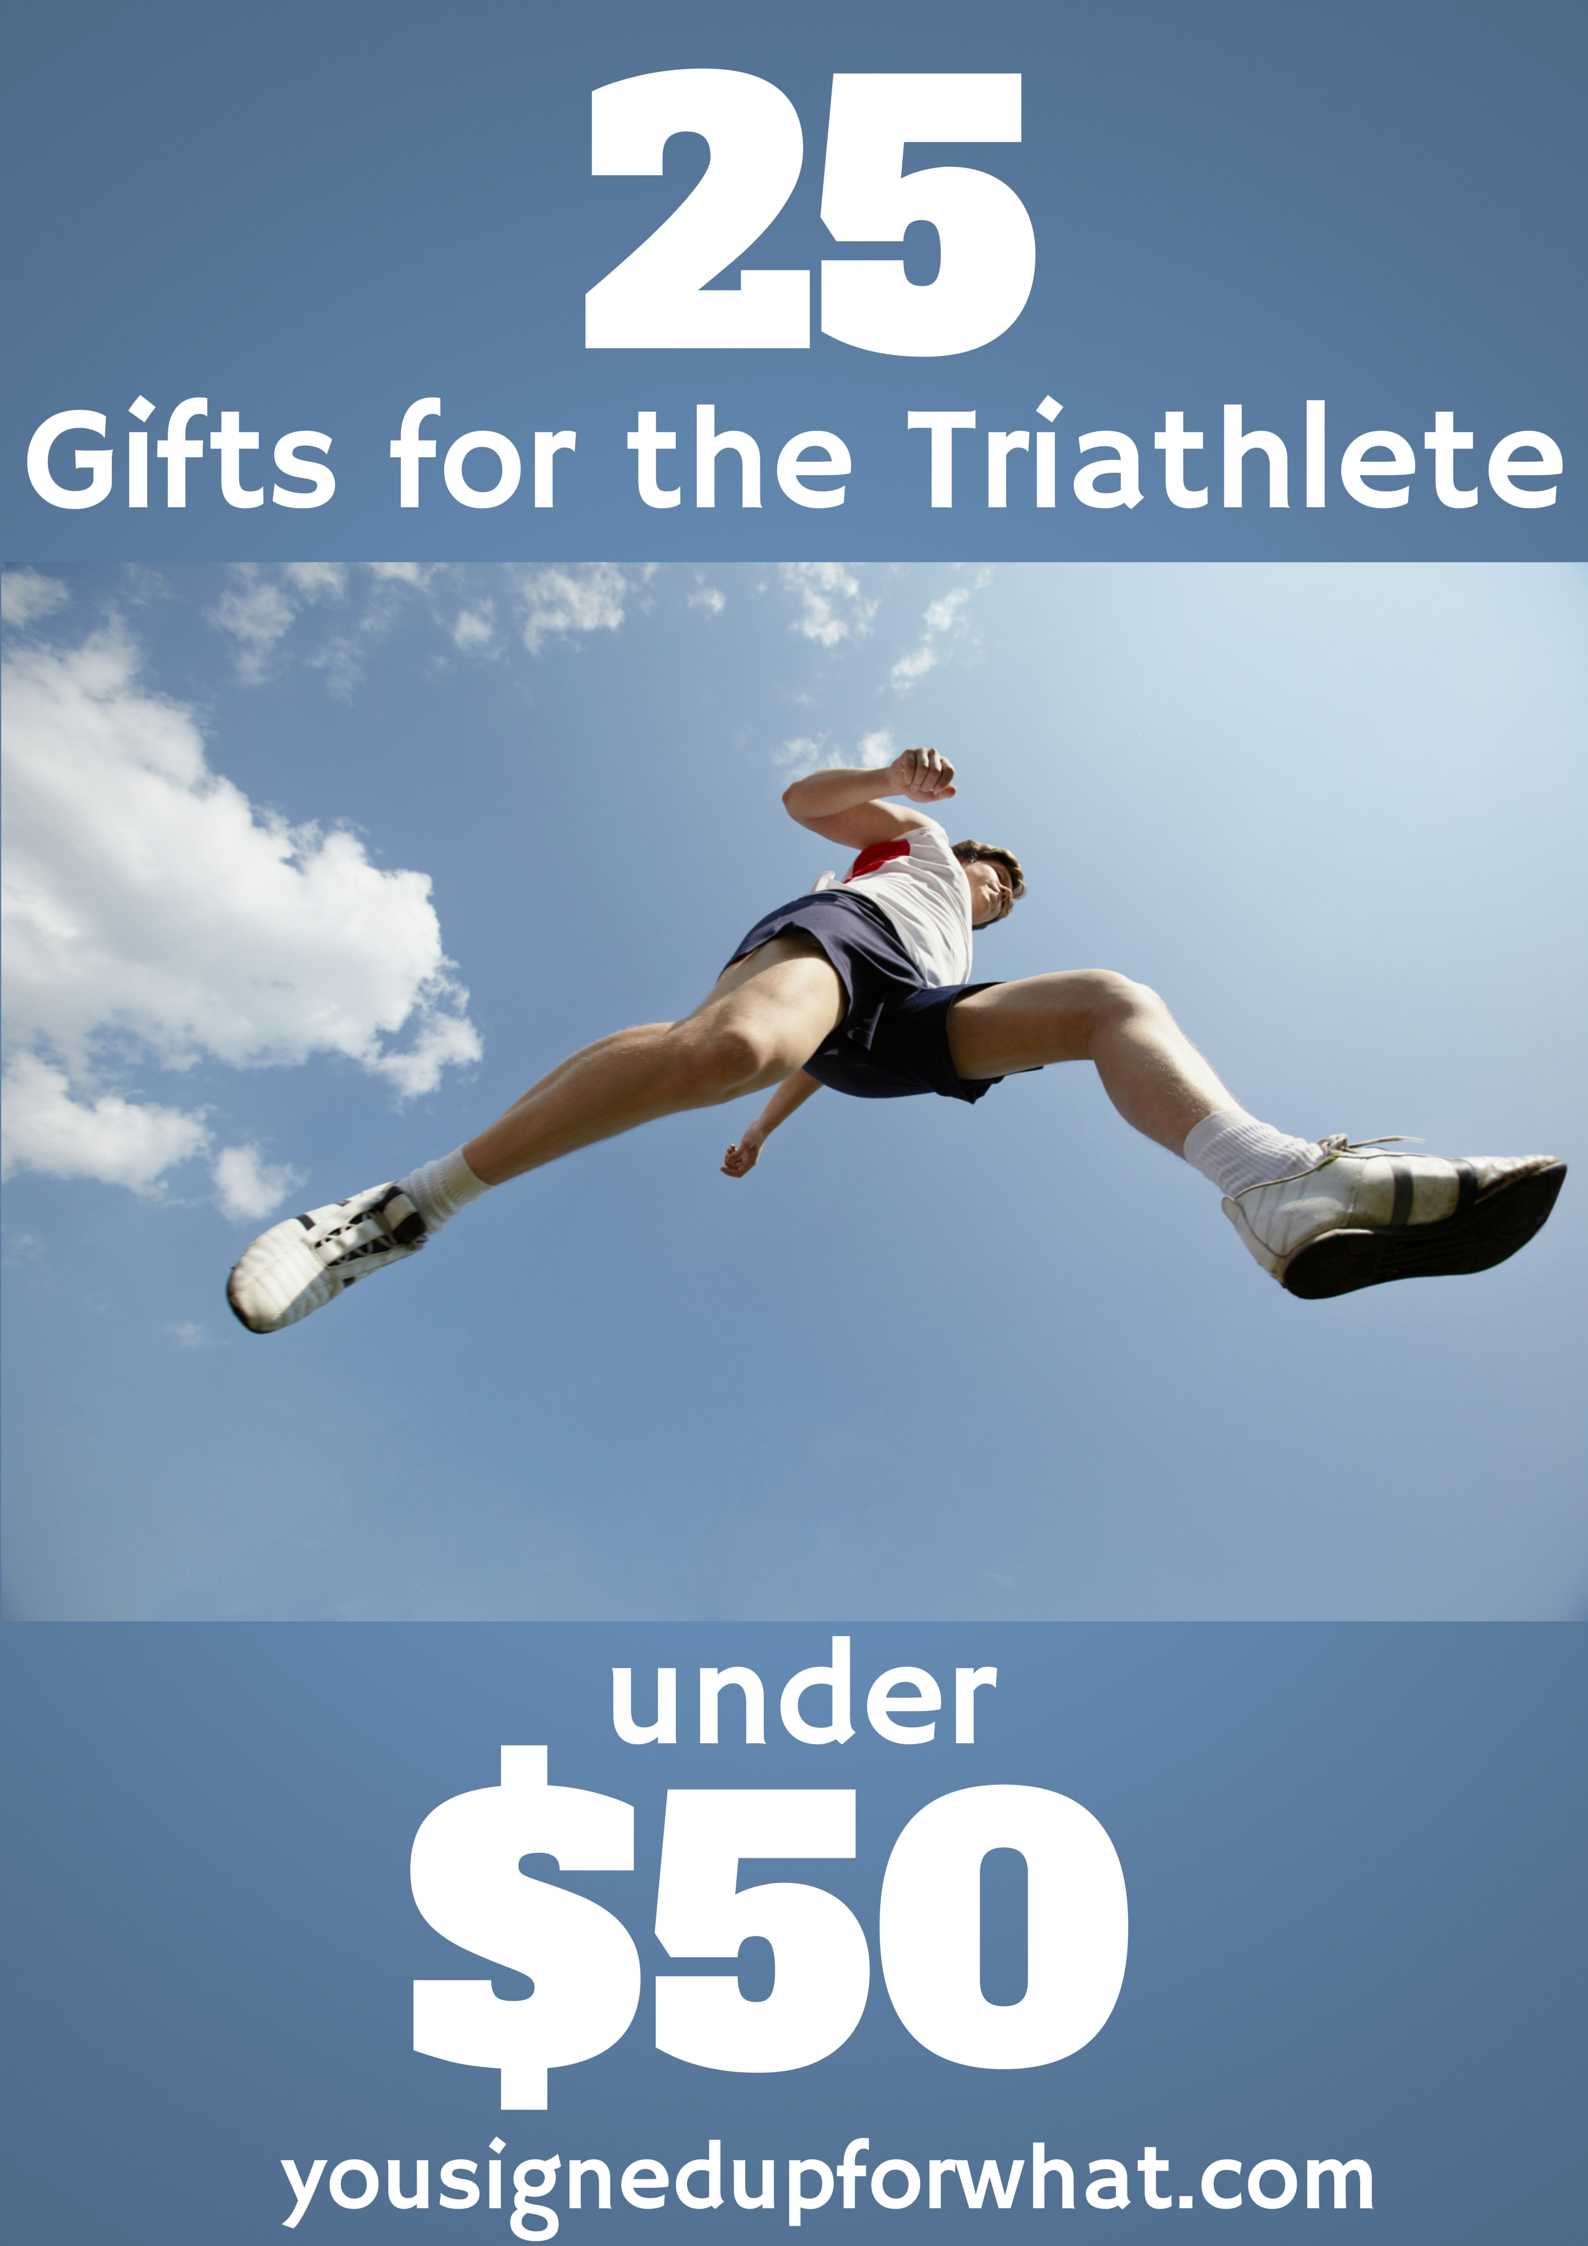 Triathlete gift guide for holiday shopping